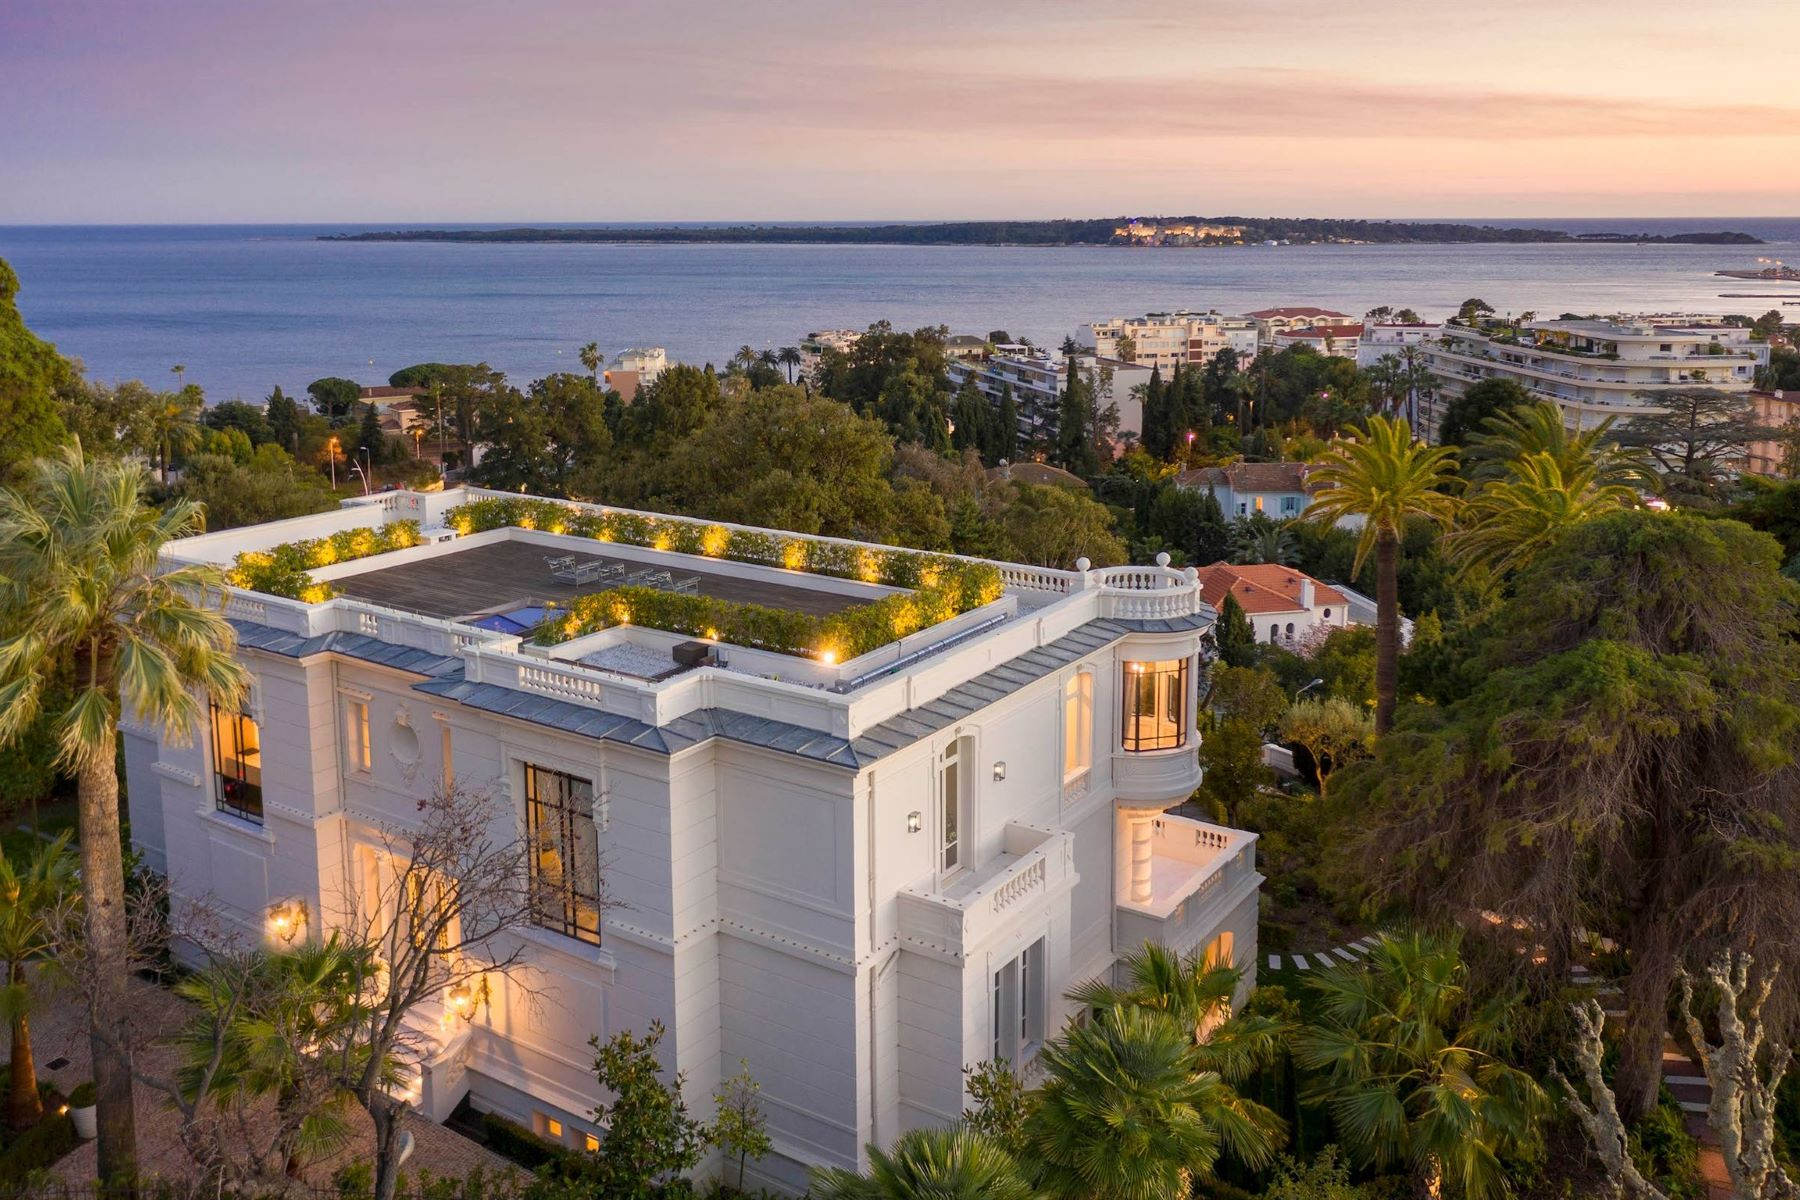 Property for Sale at Belle-Epoque property : luxury property with panoramic sea views in Cannes Cannes, Provence-Alpes-Cote D'Azur 06400 France